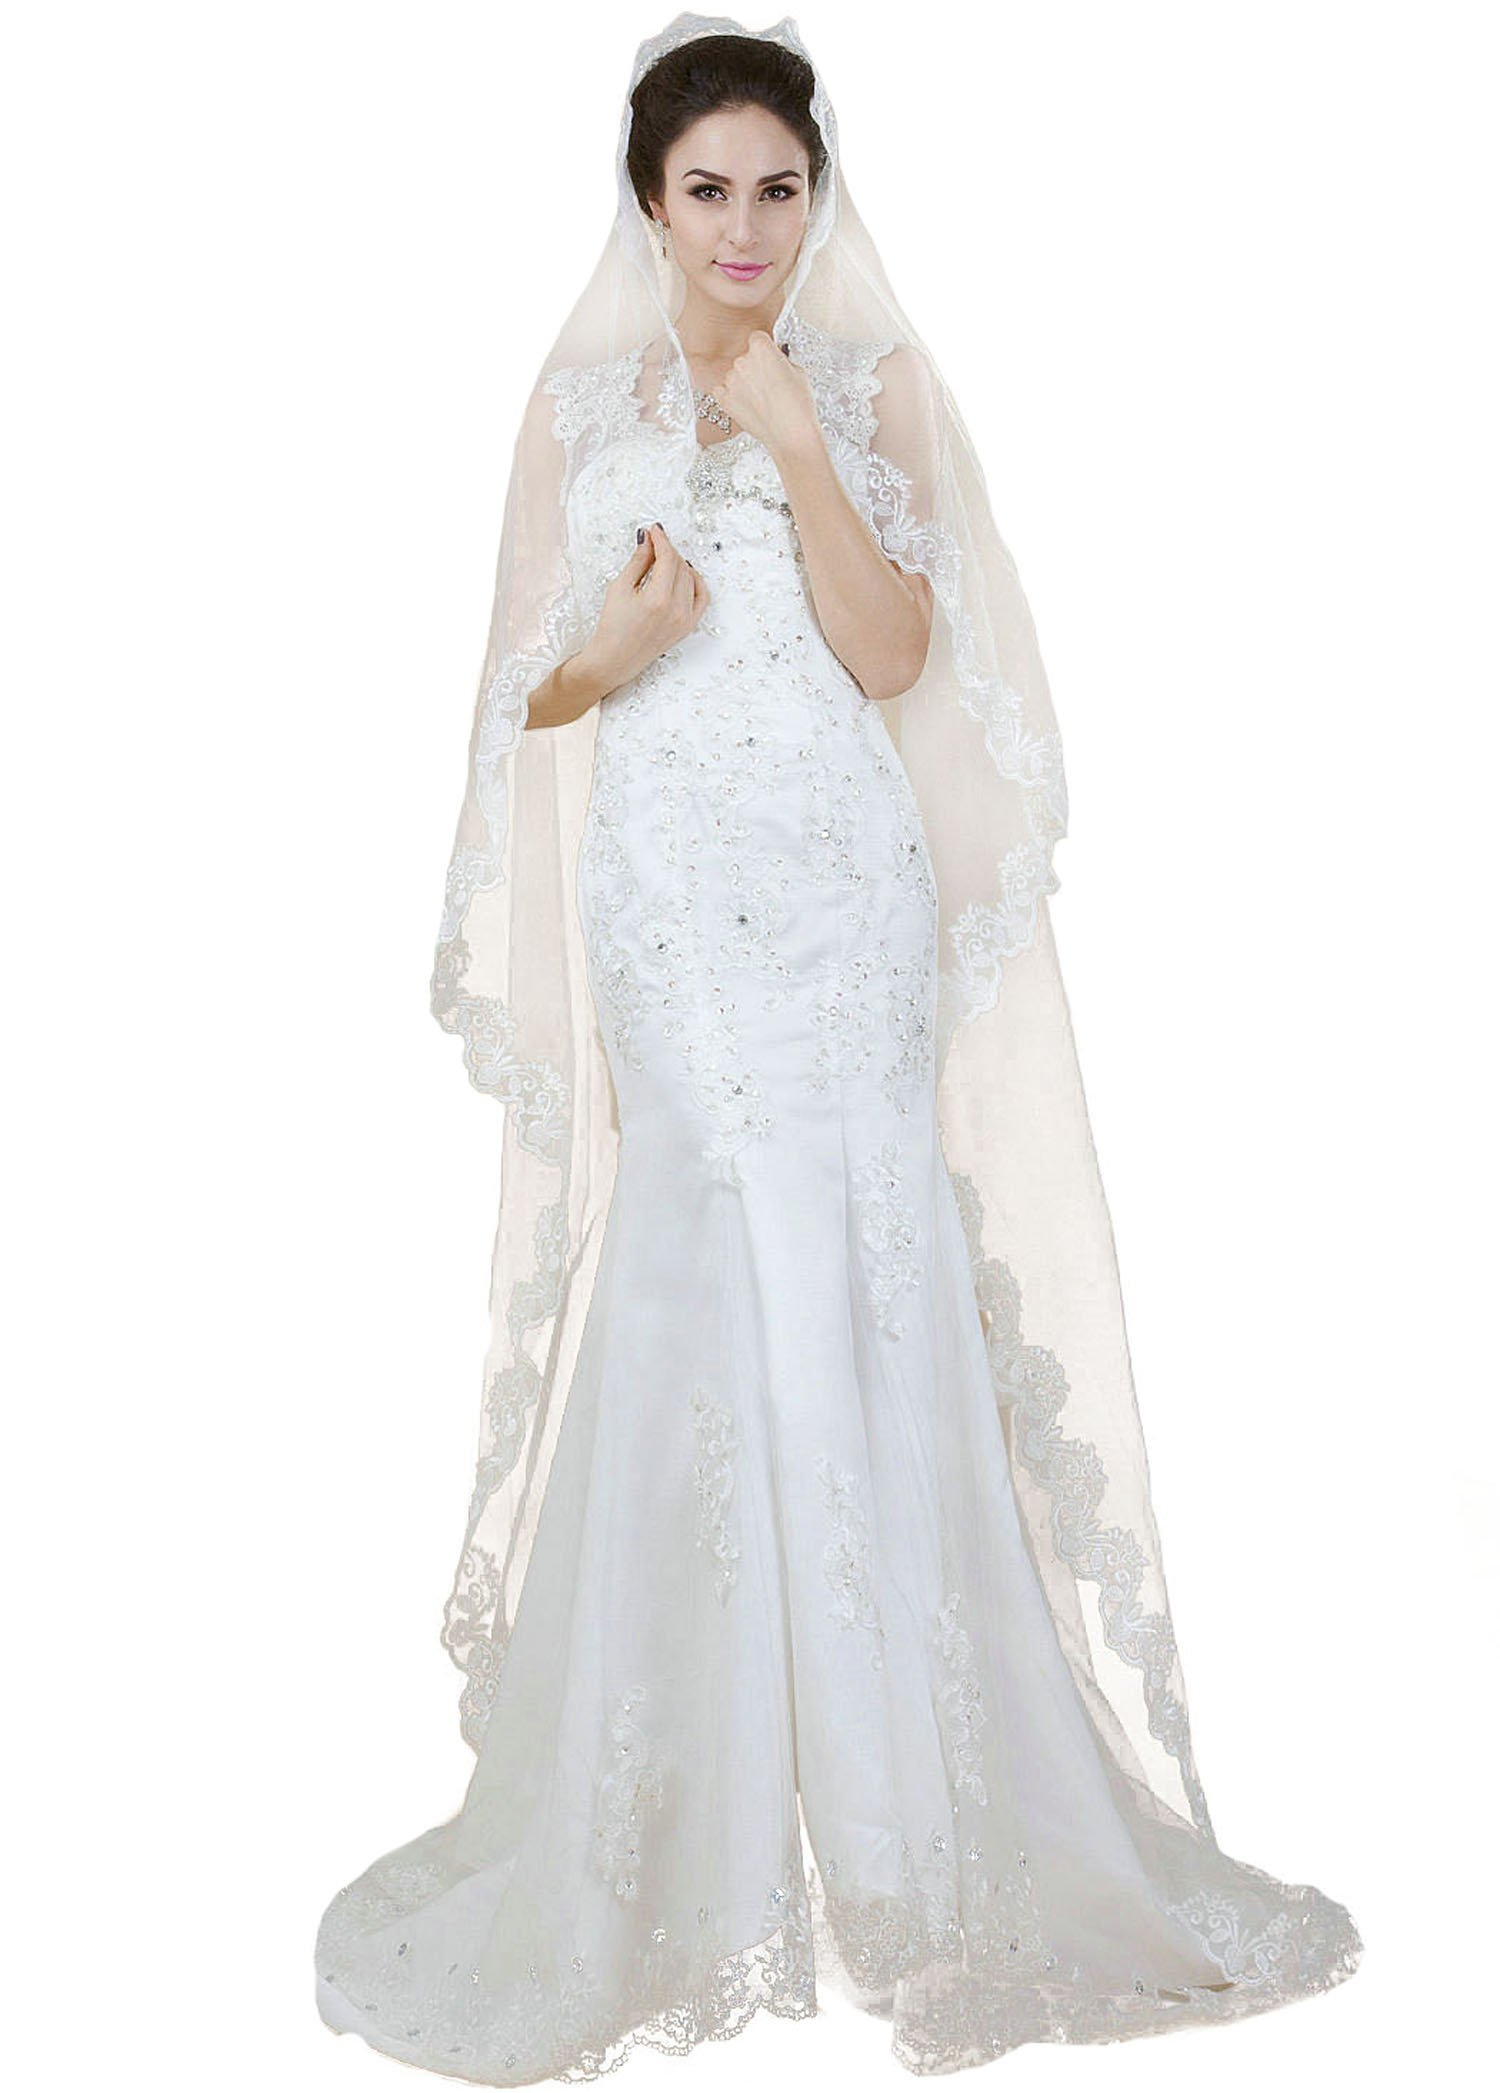 Aukmla 1 Tier Cathedral Bridal Veil with Lace Edge for Women (Ivory)